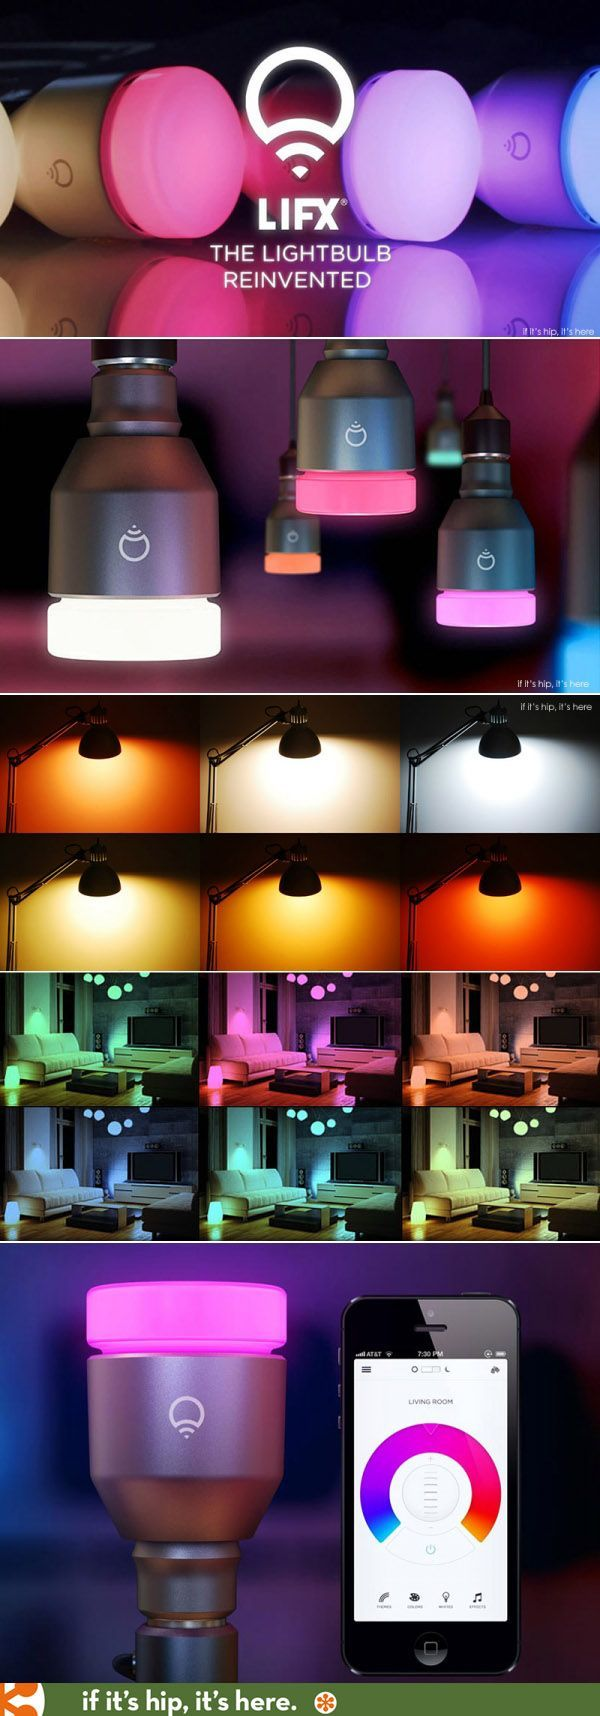 LIFX wifi-enabled multi-color light bulbs that use little energy and are controlled by your smartphone. Discount code at the link.